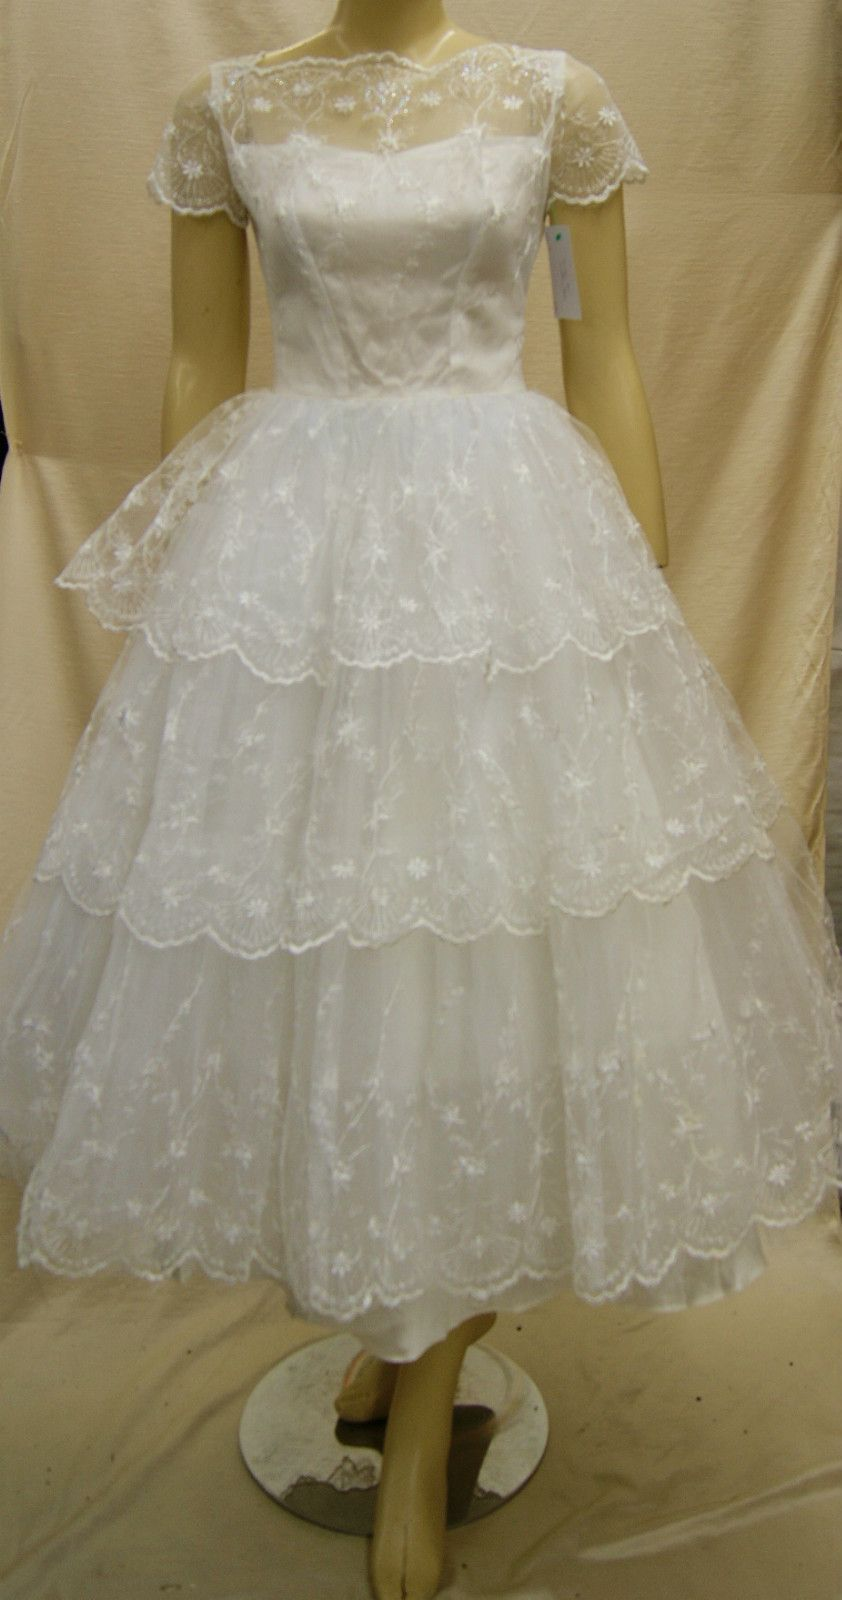 Small wedding dresses  Vintage us White Lace Wedding Dress Bridal Formal Size Small